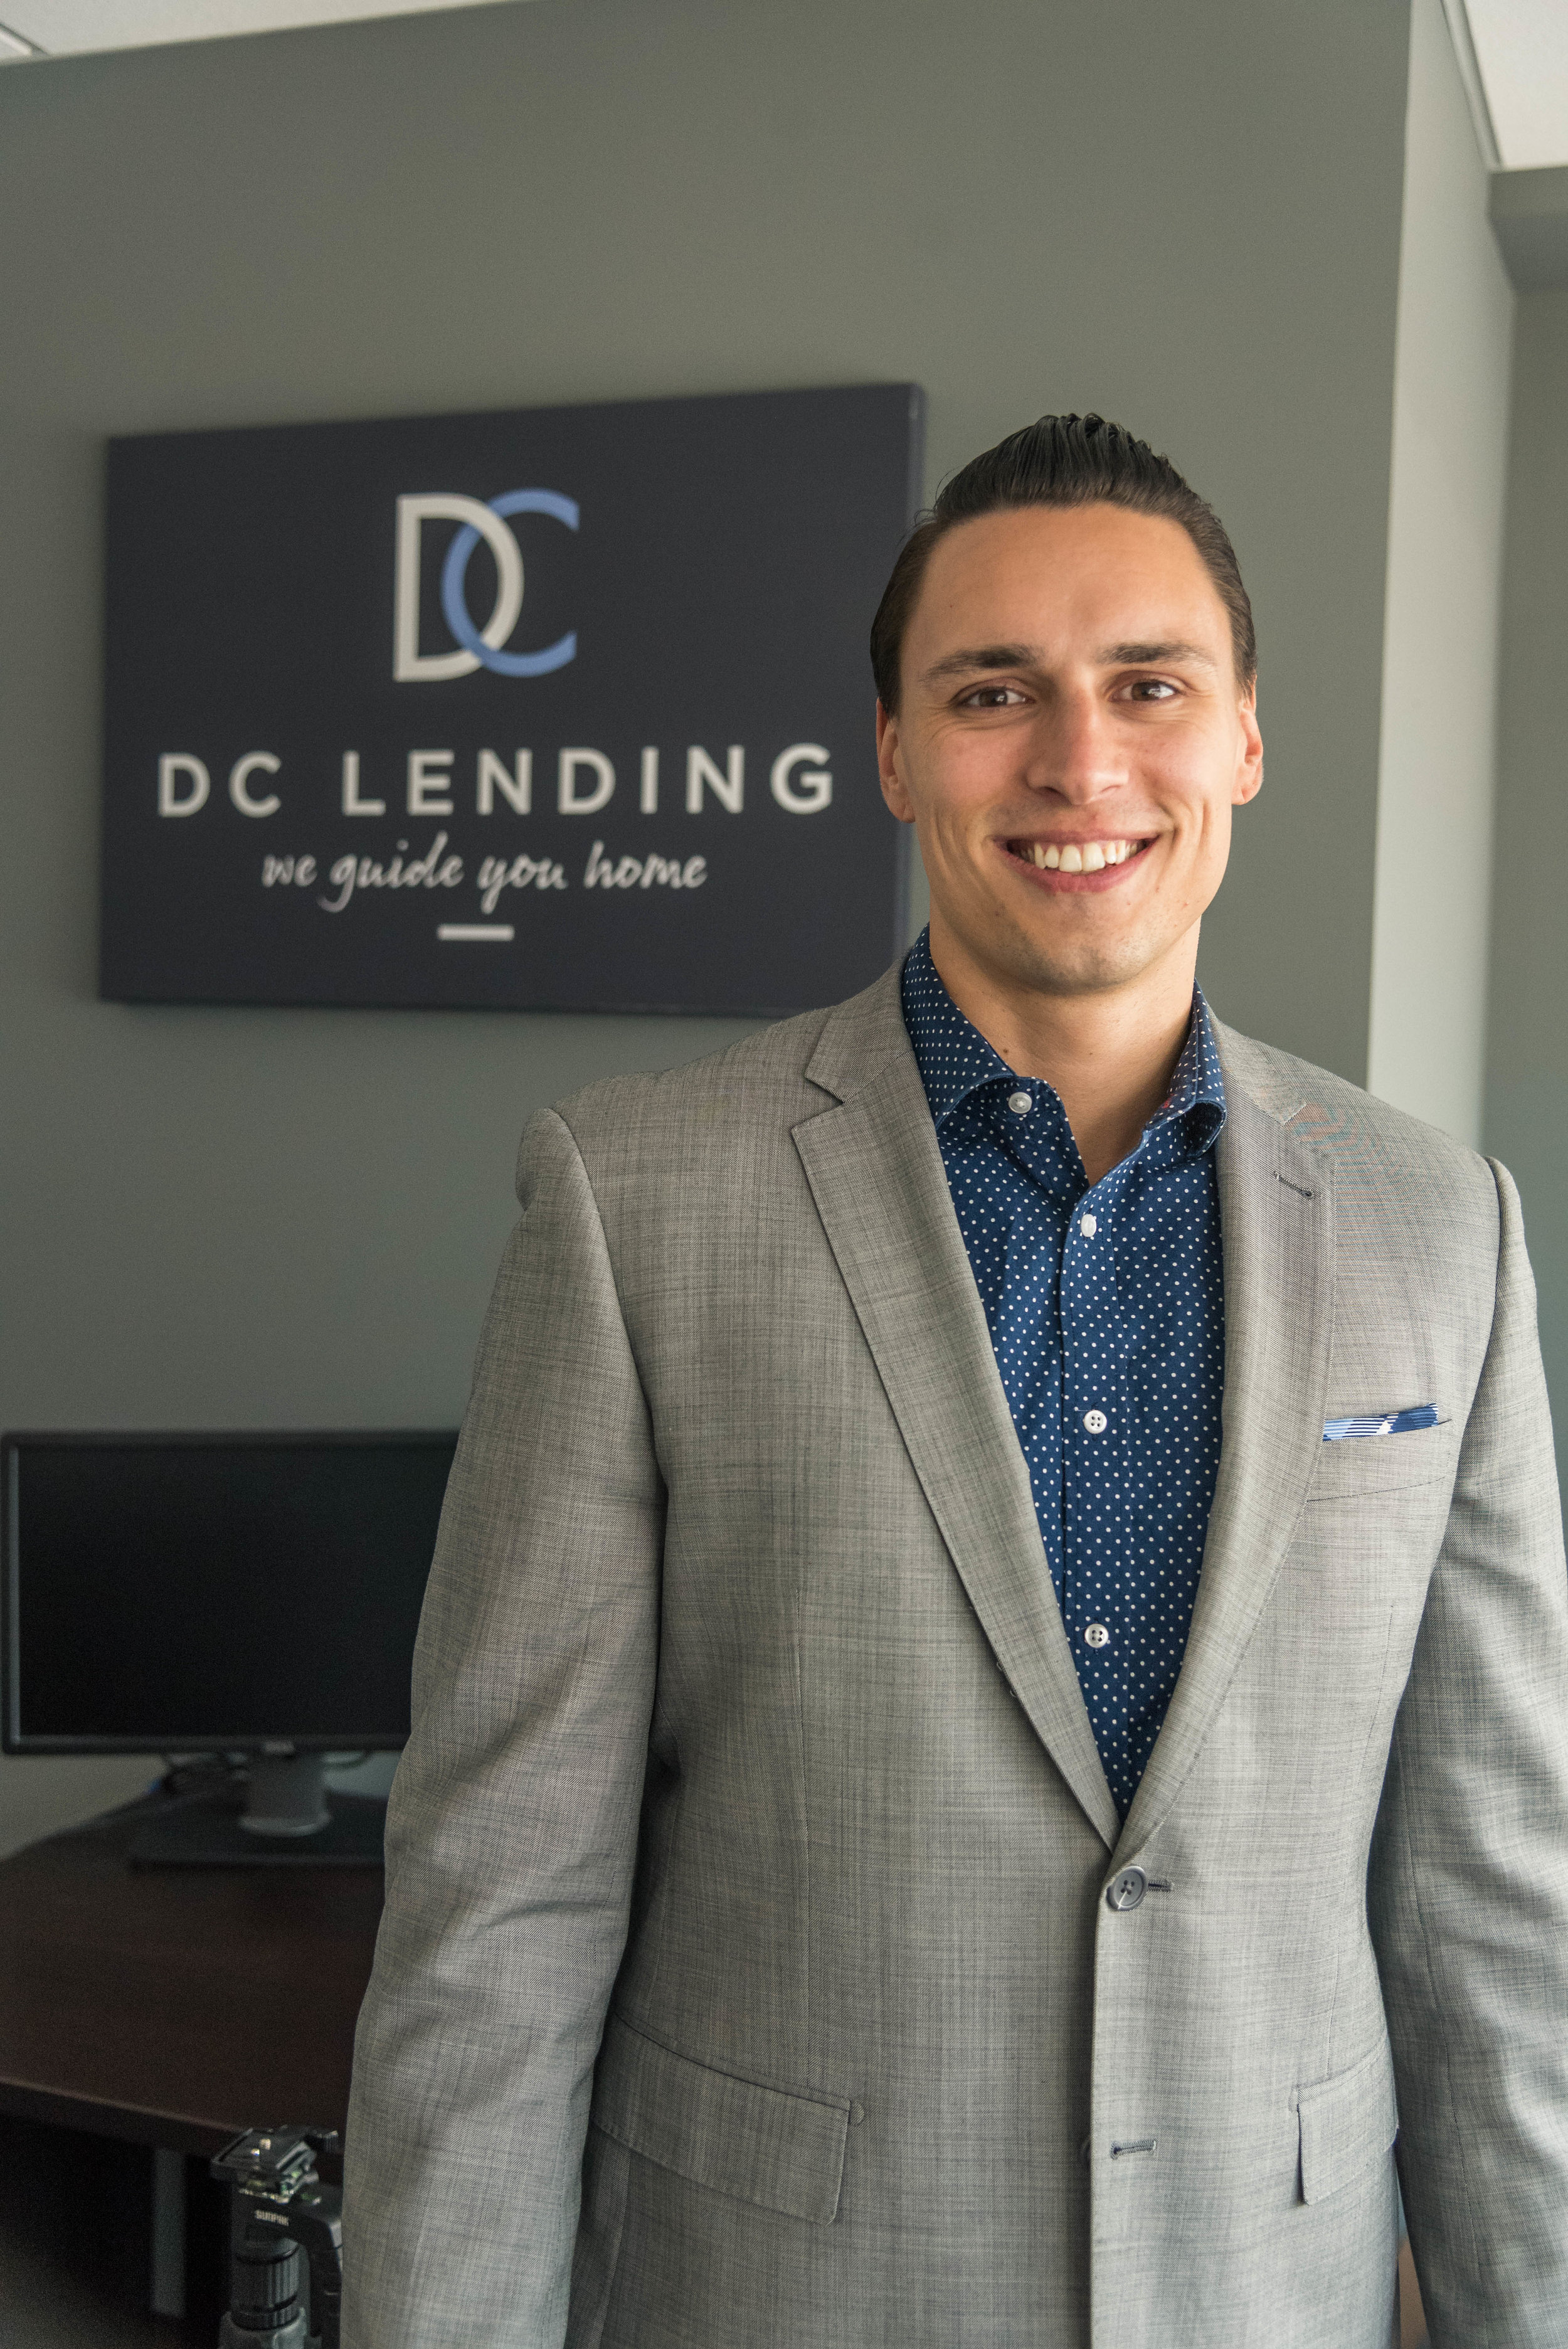 DC Lending is a locally owned mortgage company dedicated to helping more people find their way home.